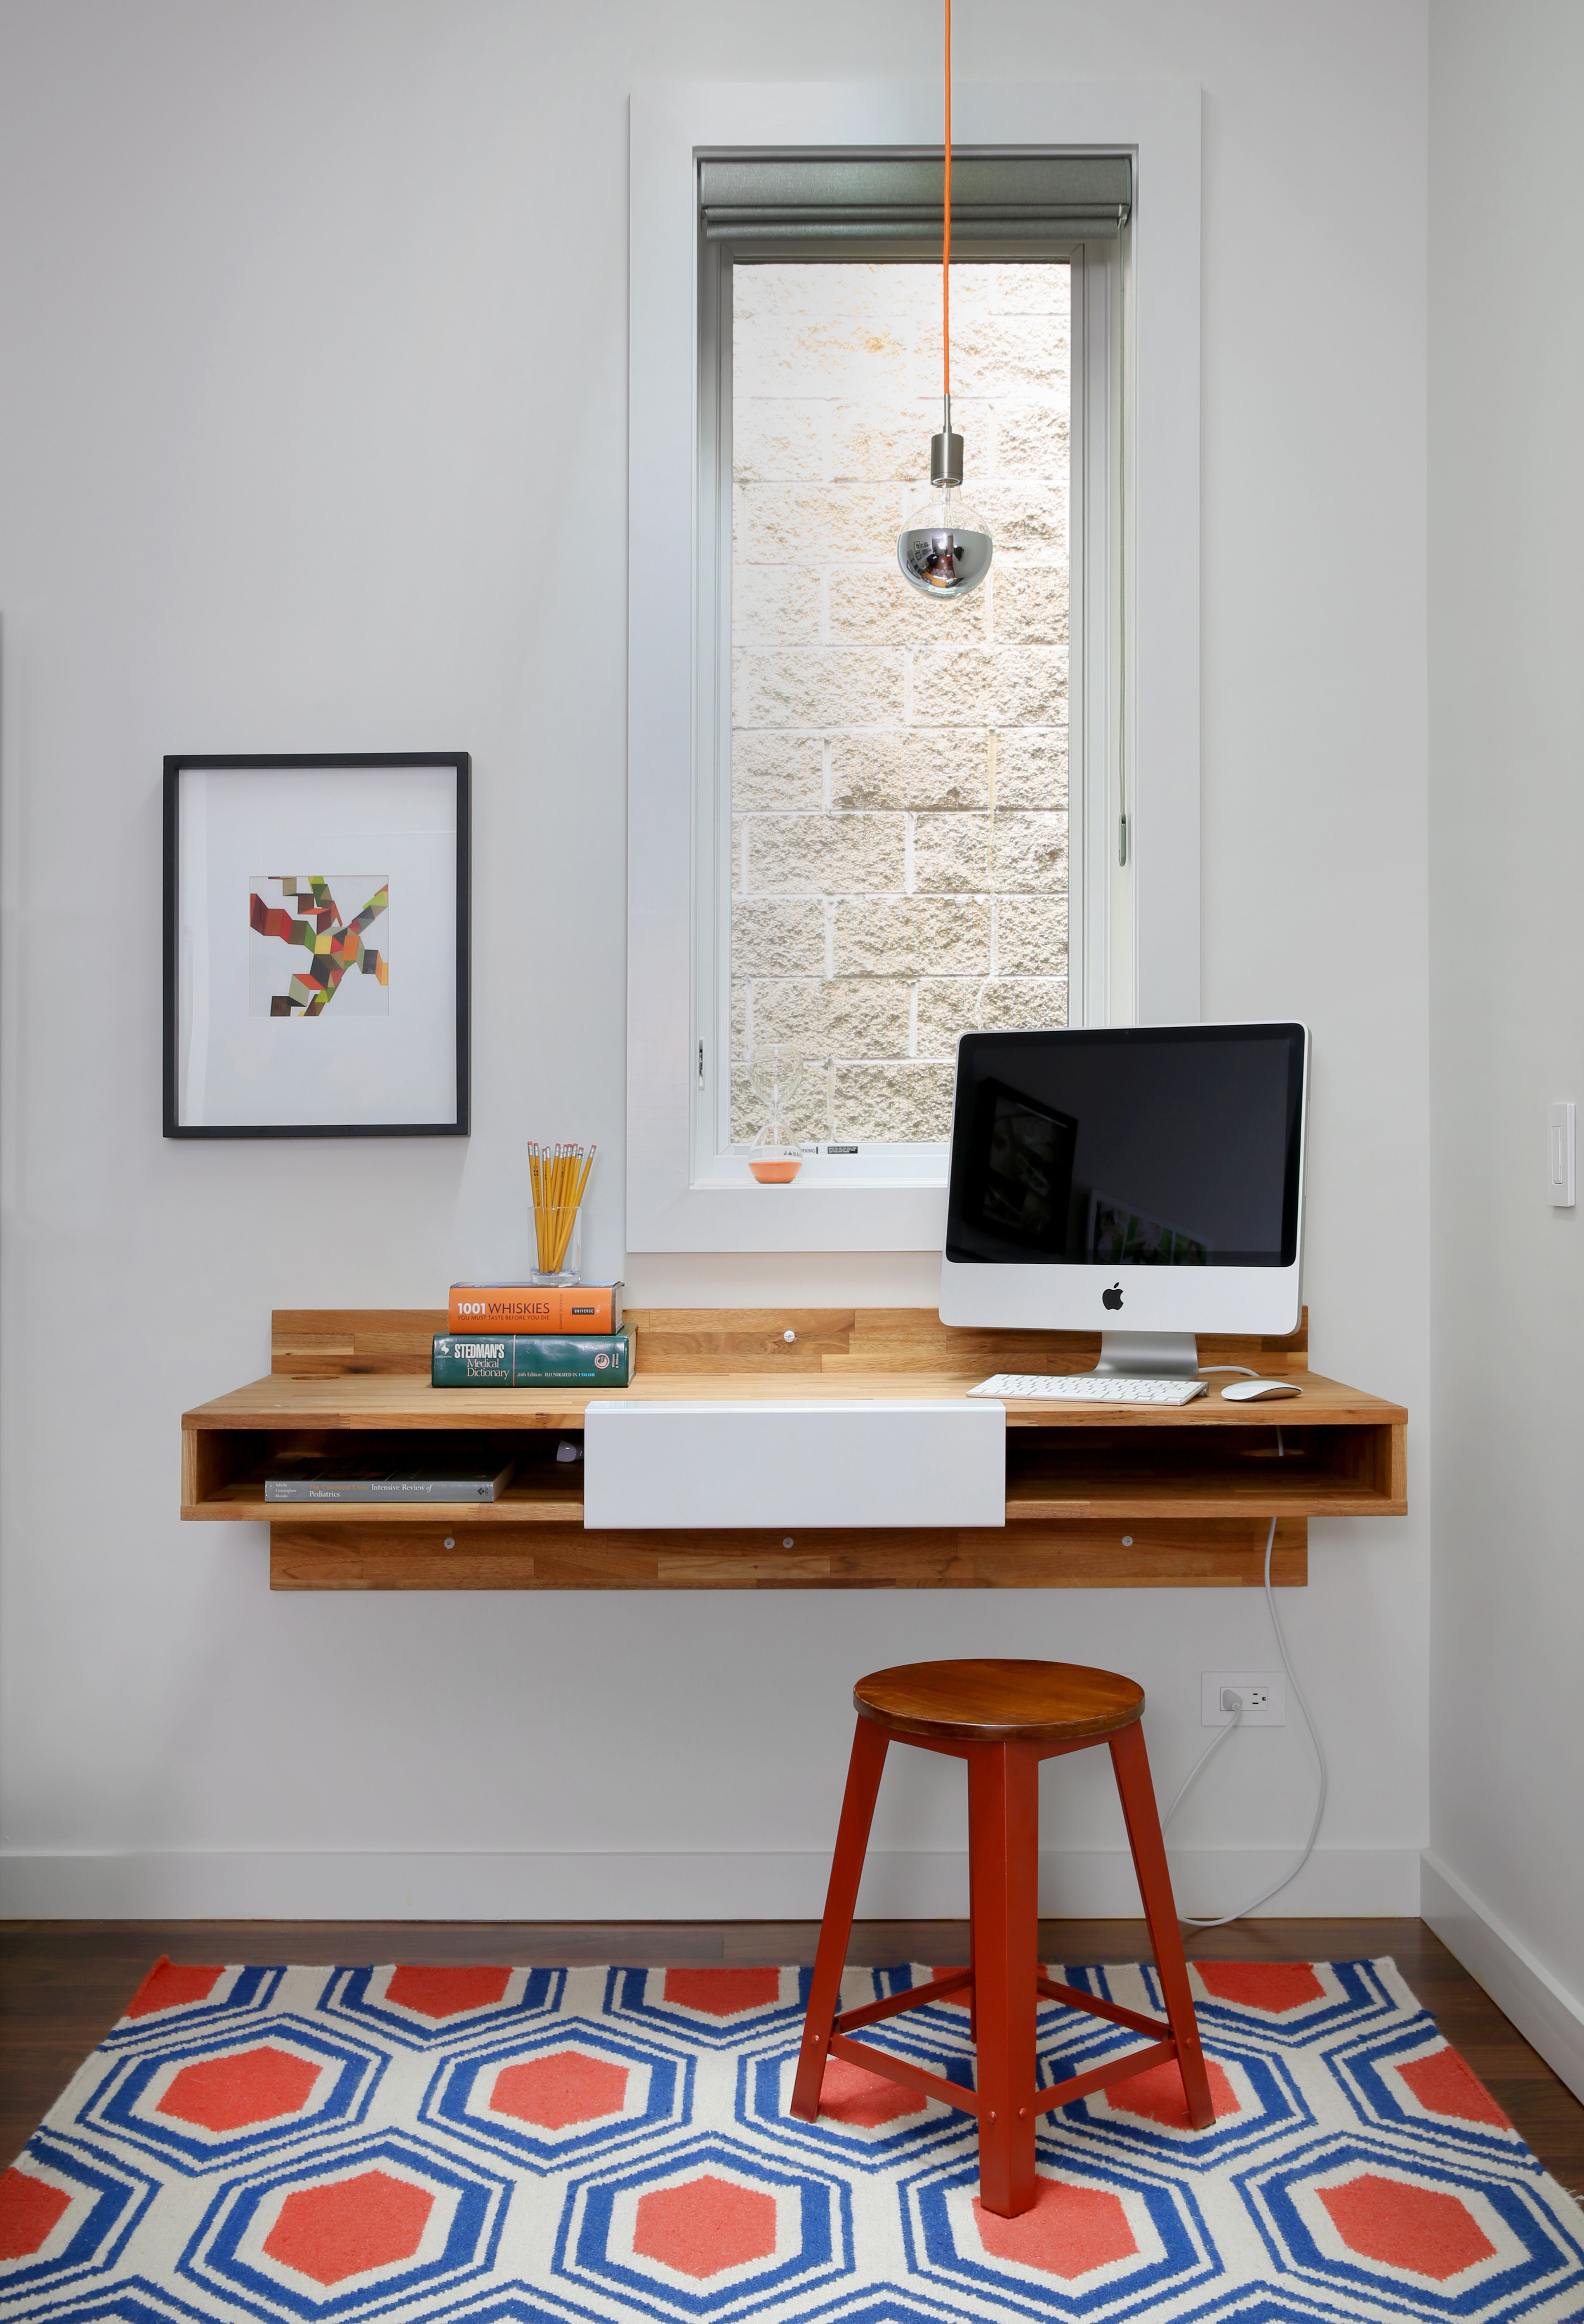 A mash studio wall mounted desk offers a place to study the rug is from one kings lane and a soco modern socket pendant illuminates the room